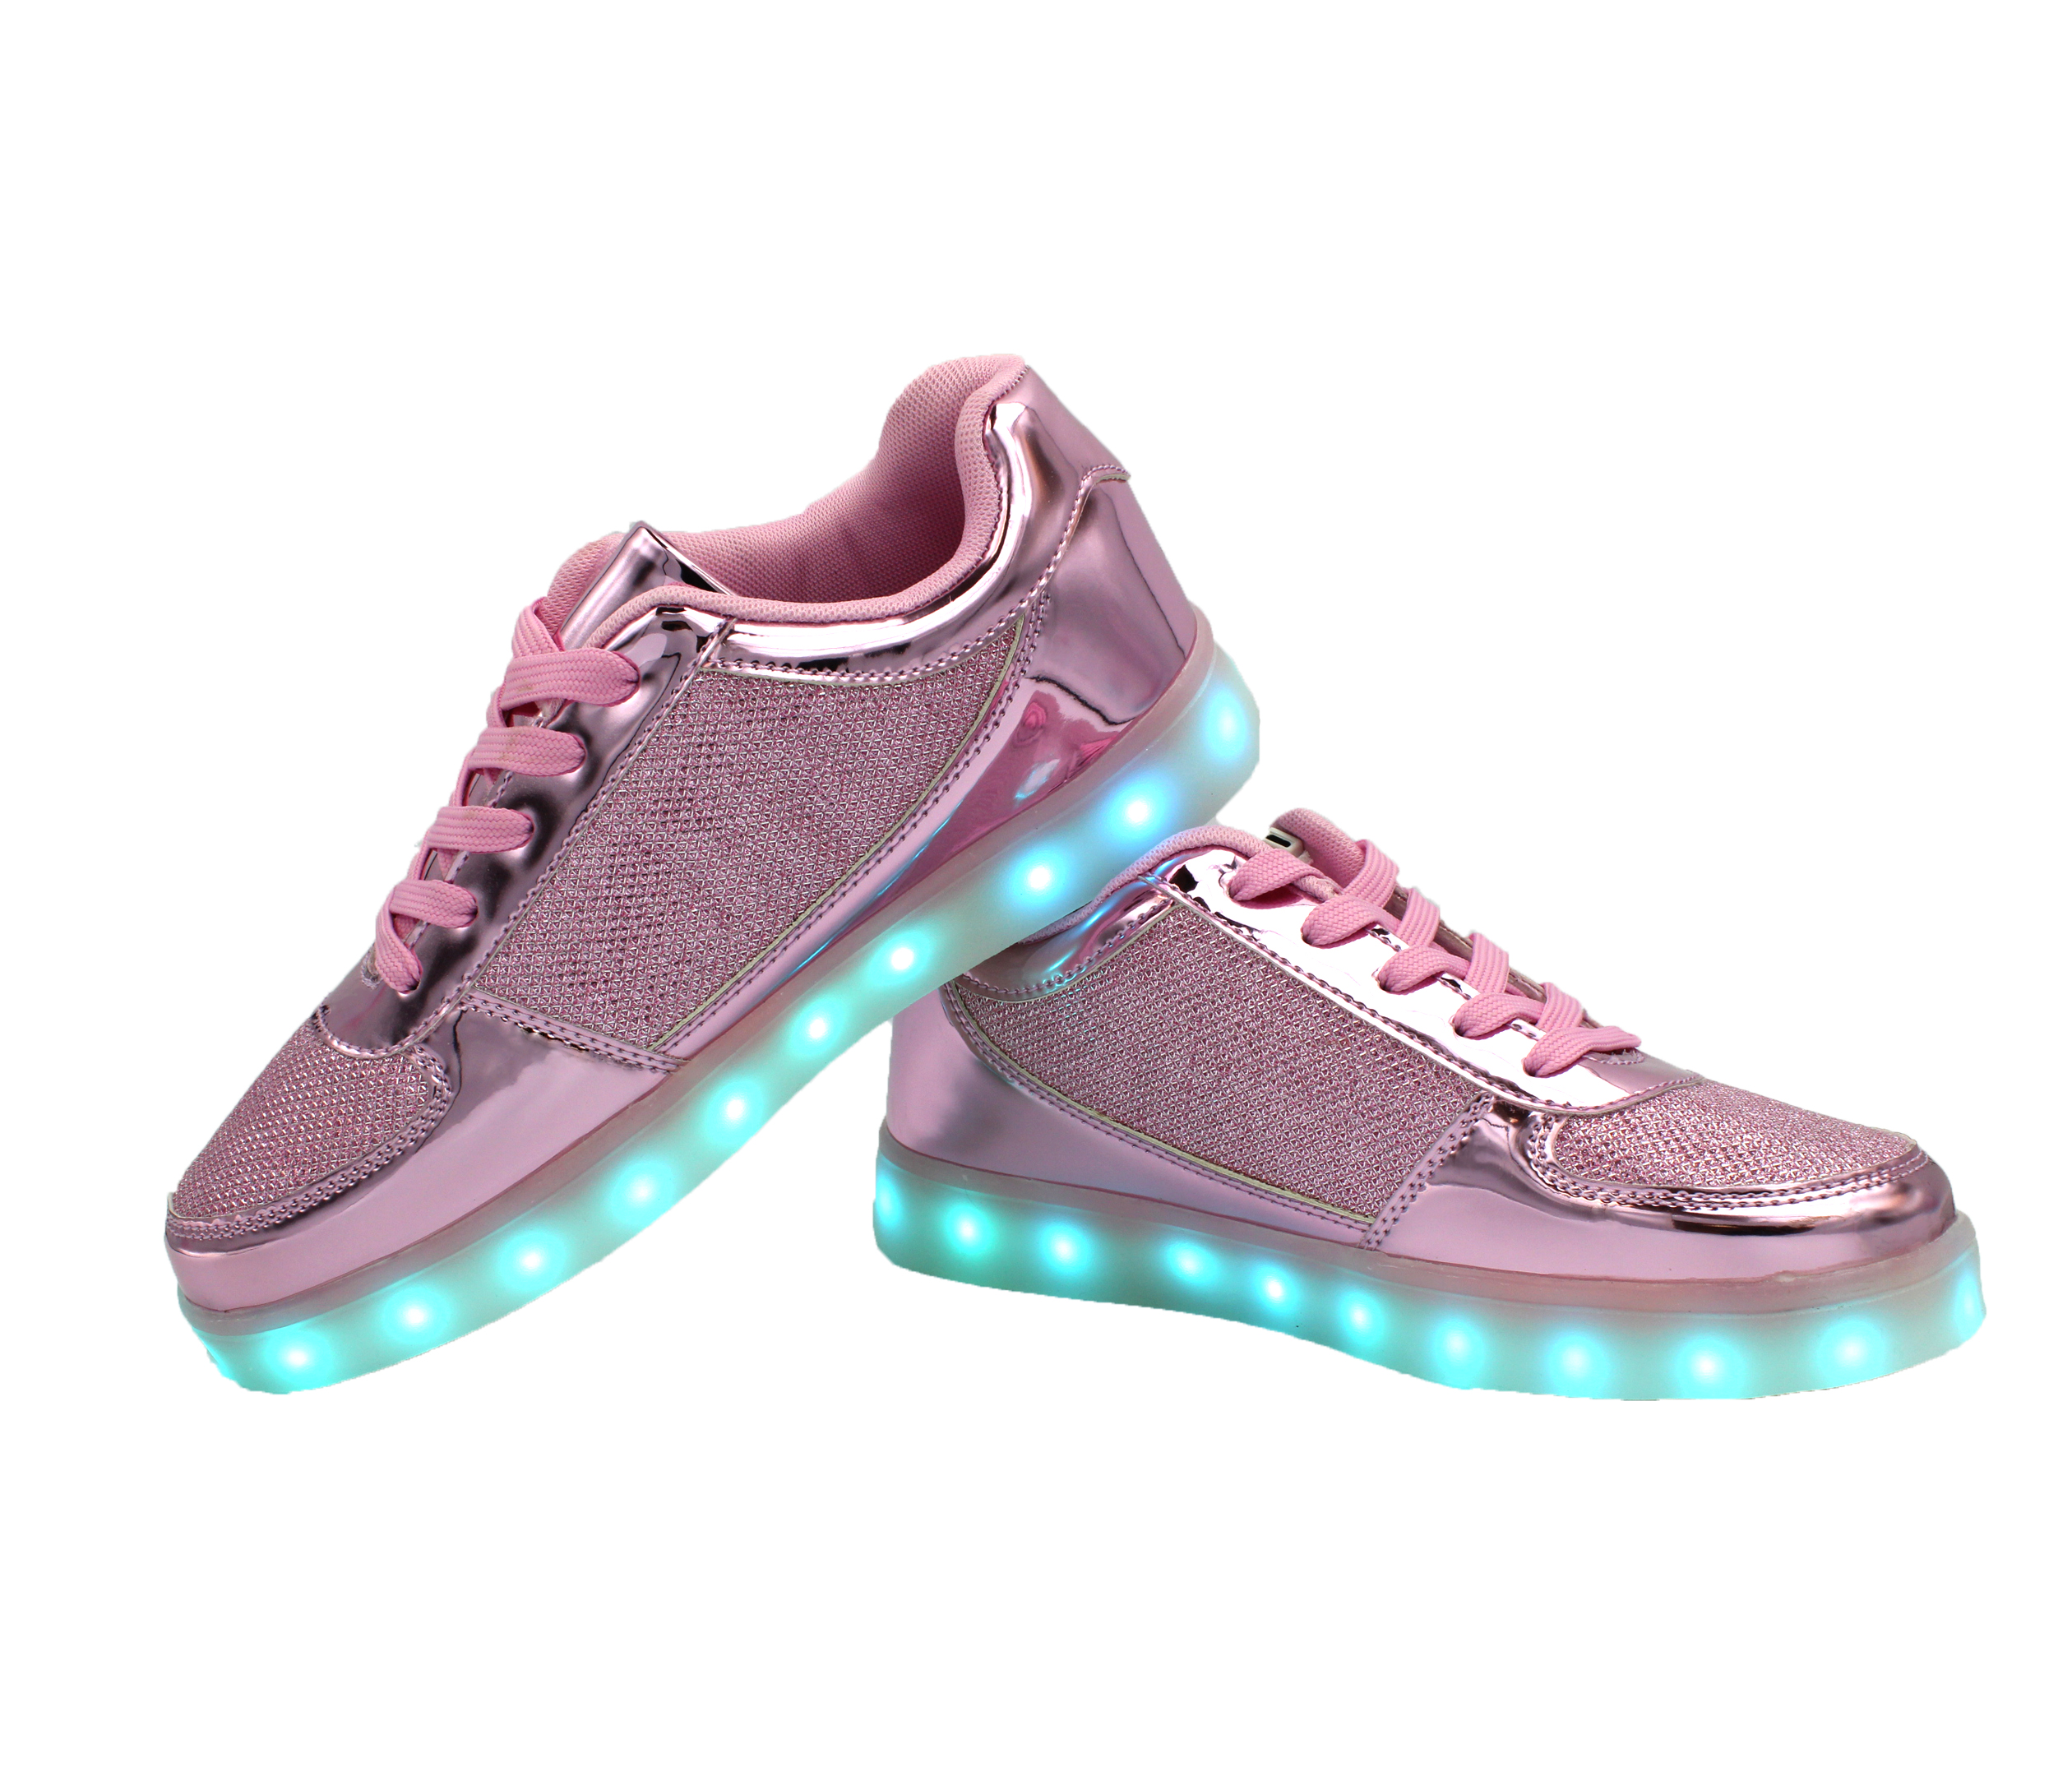 Galaxy LED Shoes Light Up USB Charging Low Top Women s Sneakers (Pink  Glossy Fusion) 3944bd2e6d